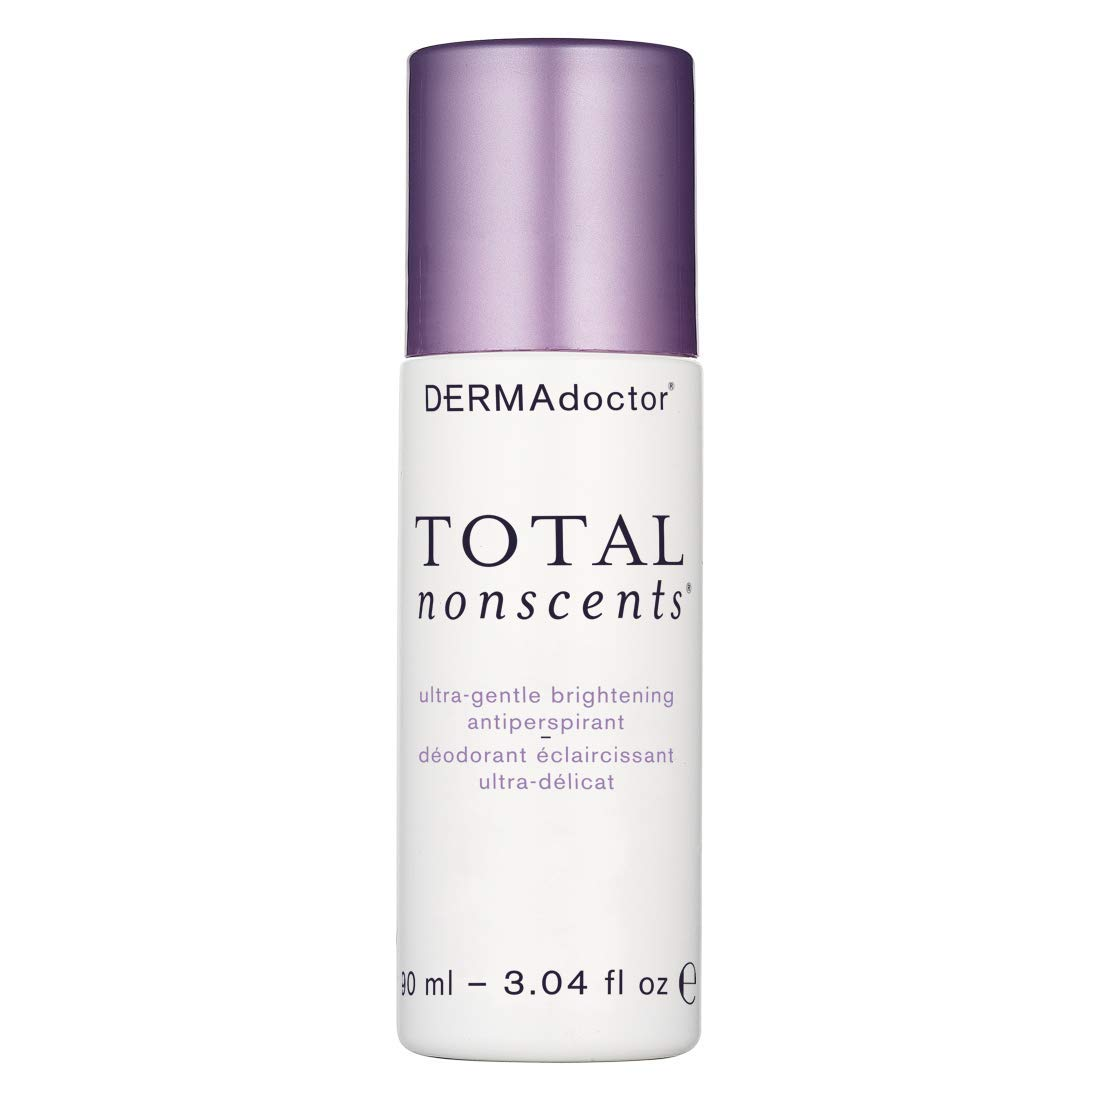 DERMAdoctor Total Nonscents Ultra-Gentle Brightening Antiperspirant, 3.04 fl oz